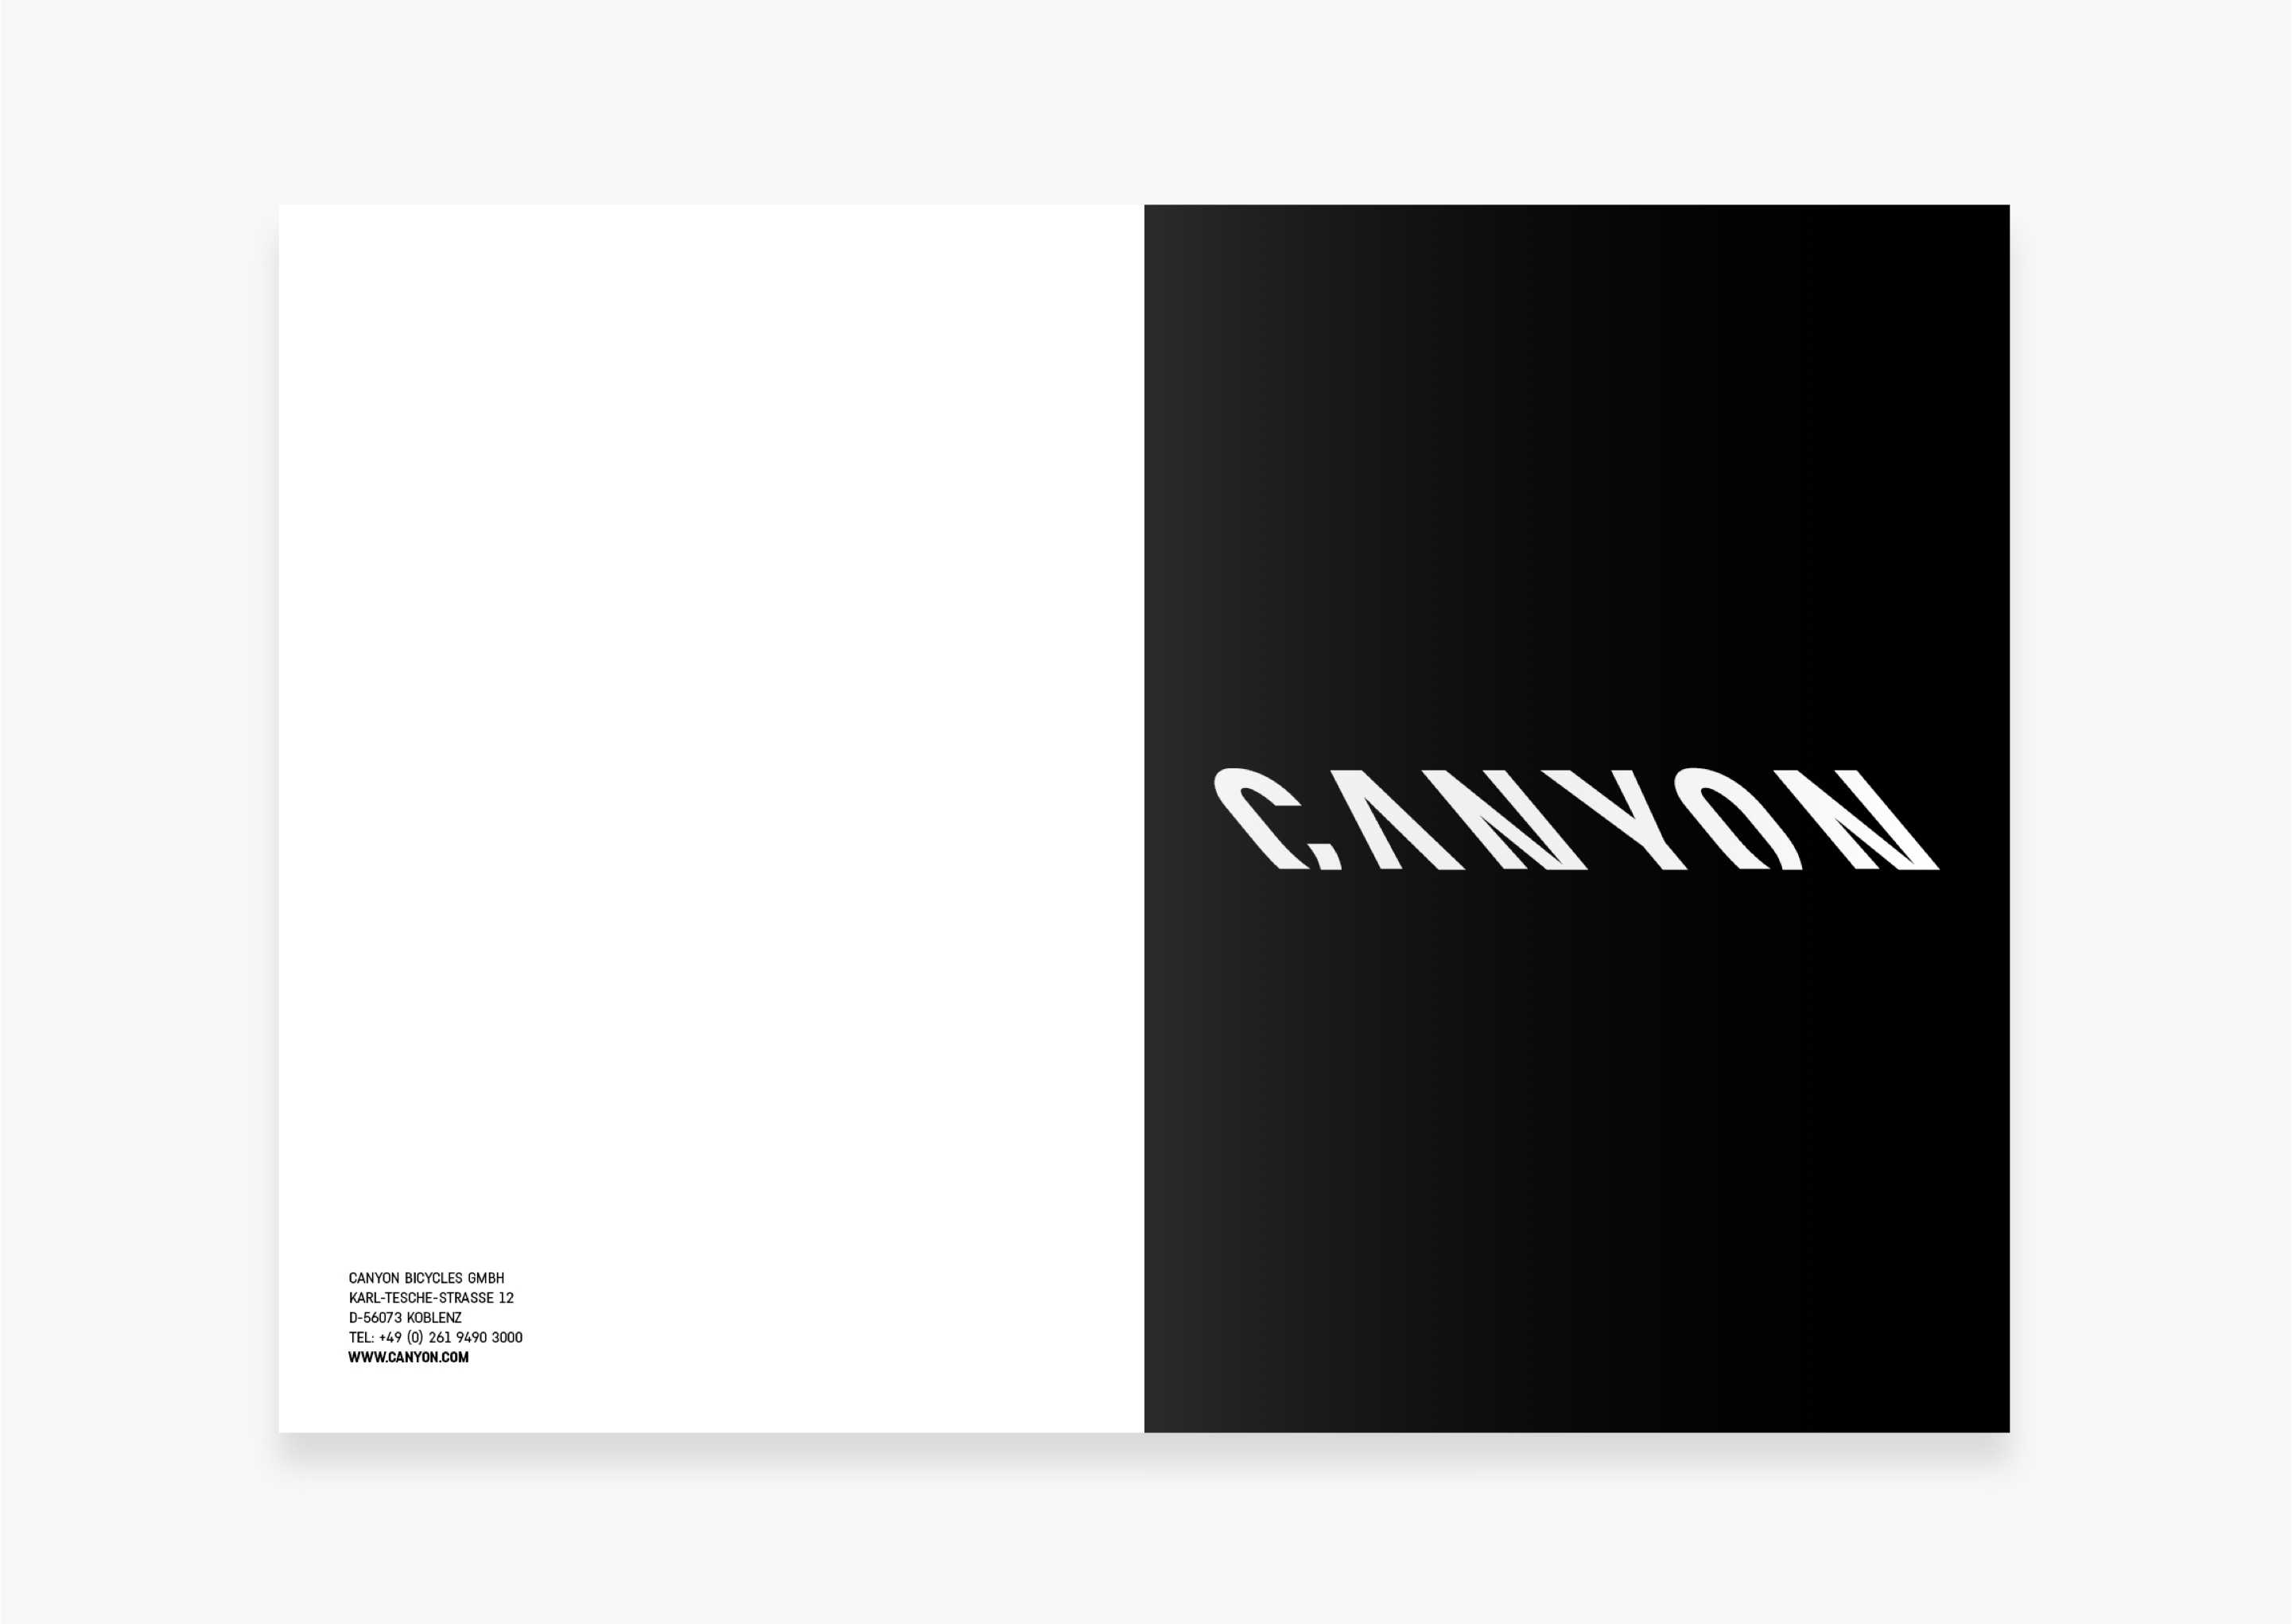 can_10@2x